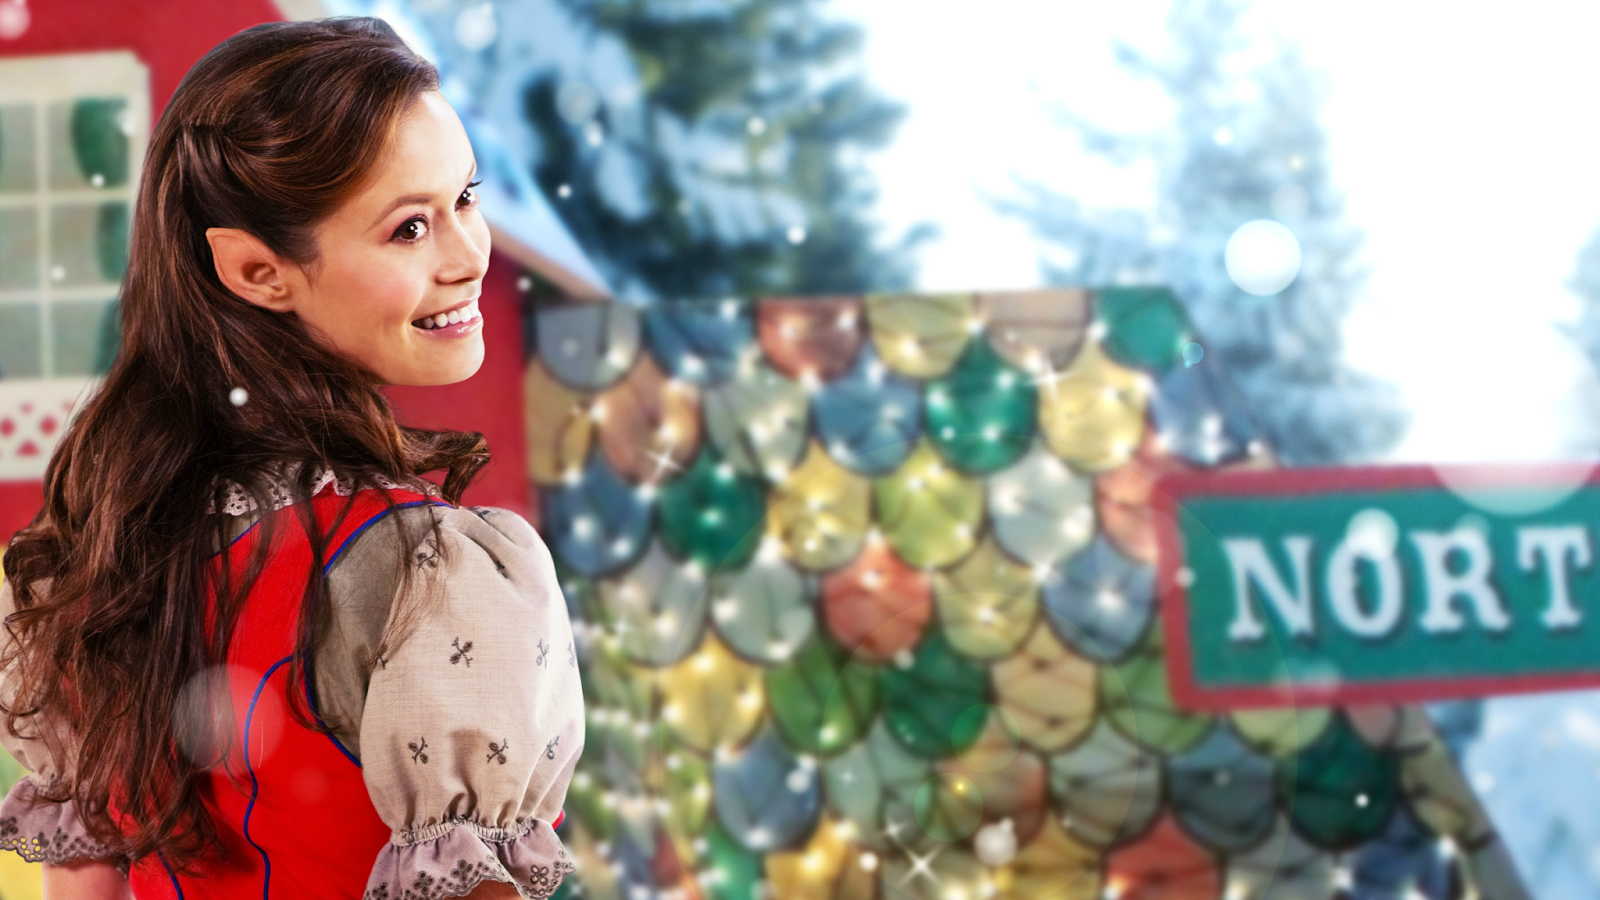 The promo art for the Hallmark Channel movie 'Help for the Holidays' starring Summer Glau